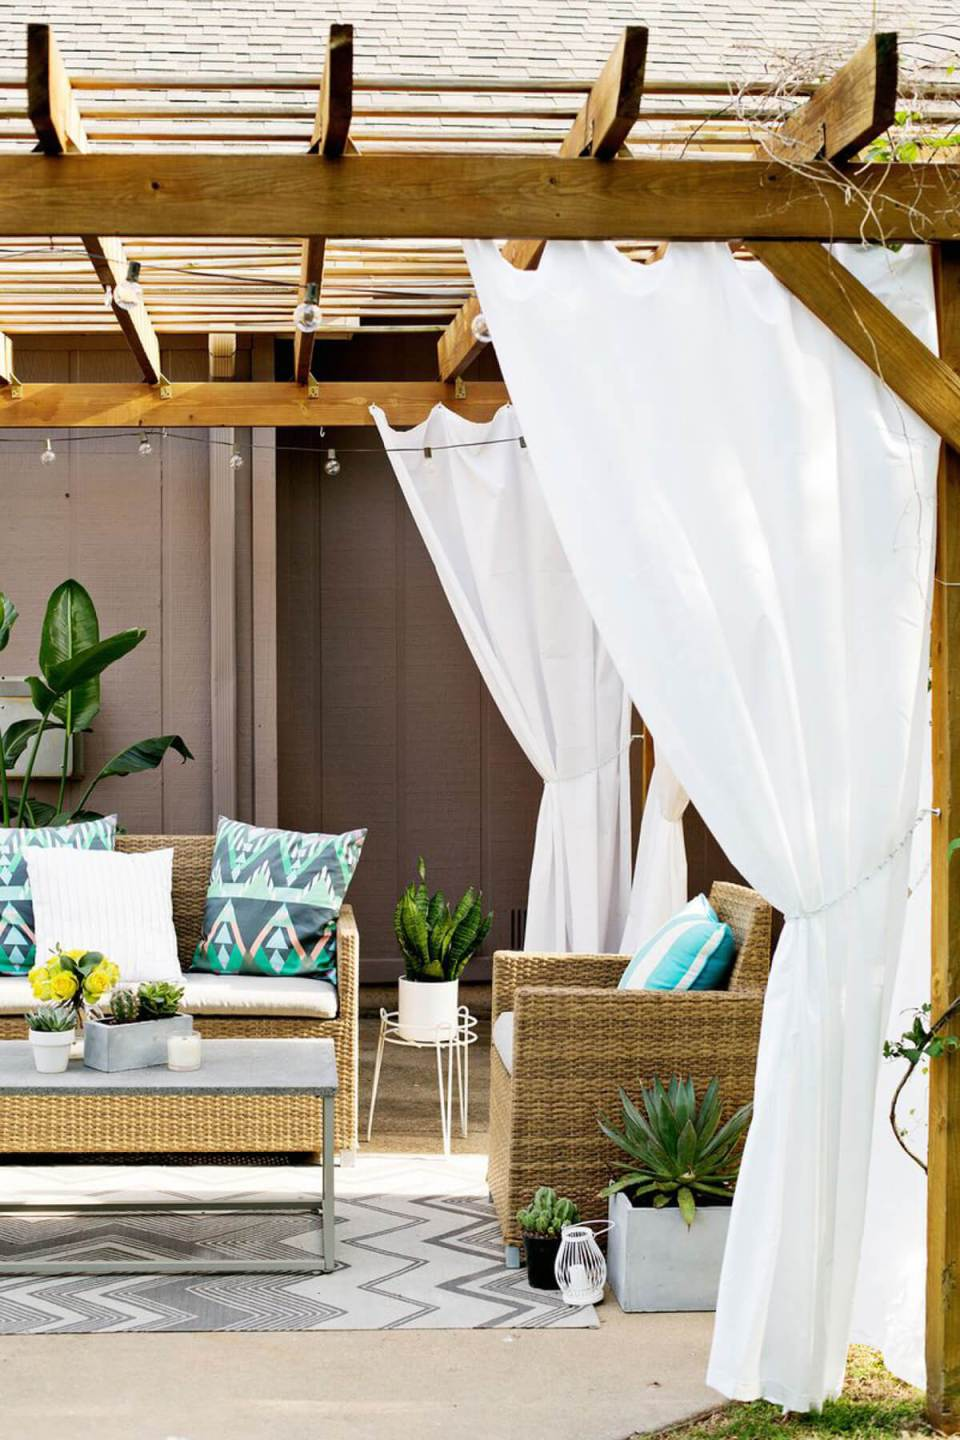 DIY Pergola Ideas: Malibu Shelter Curtained Pergola